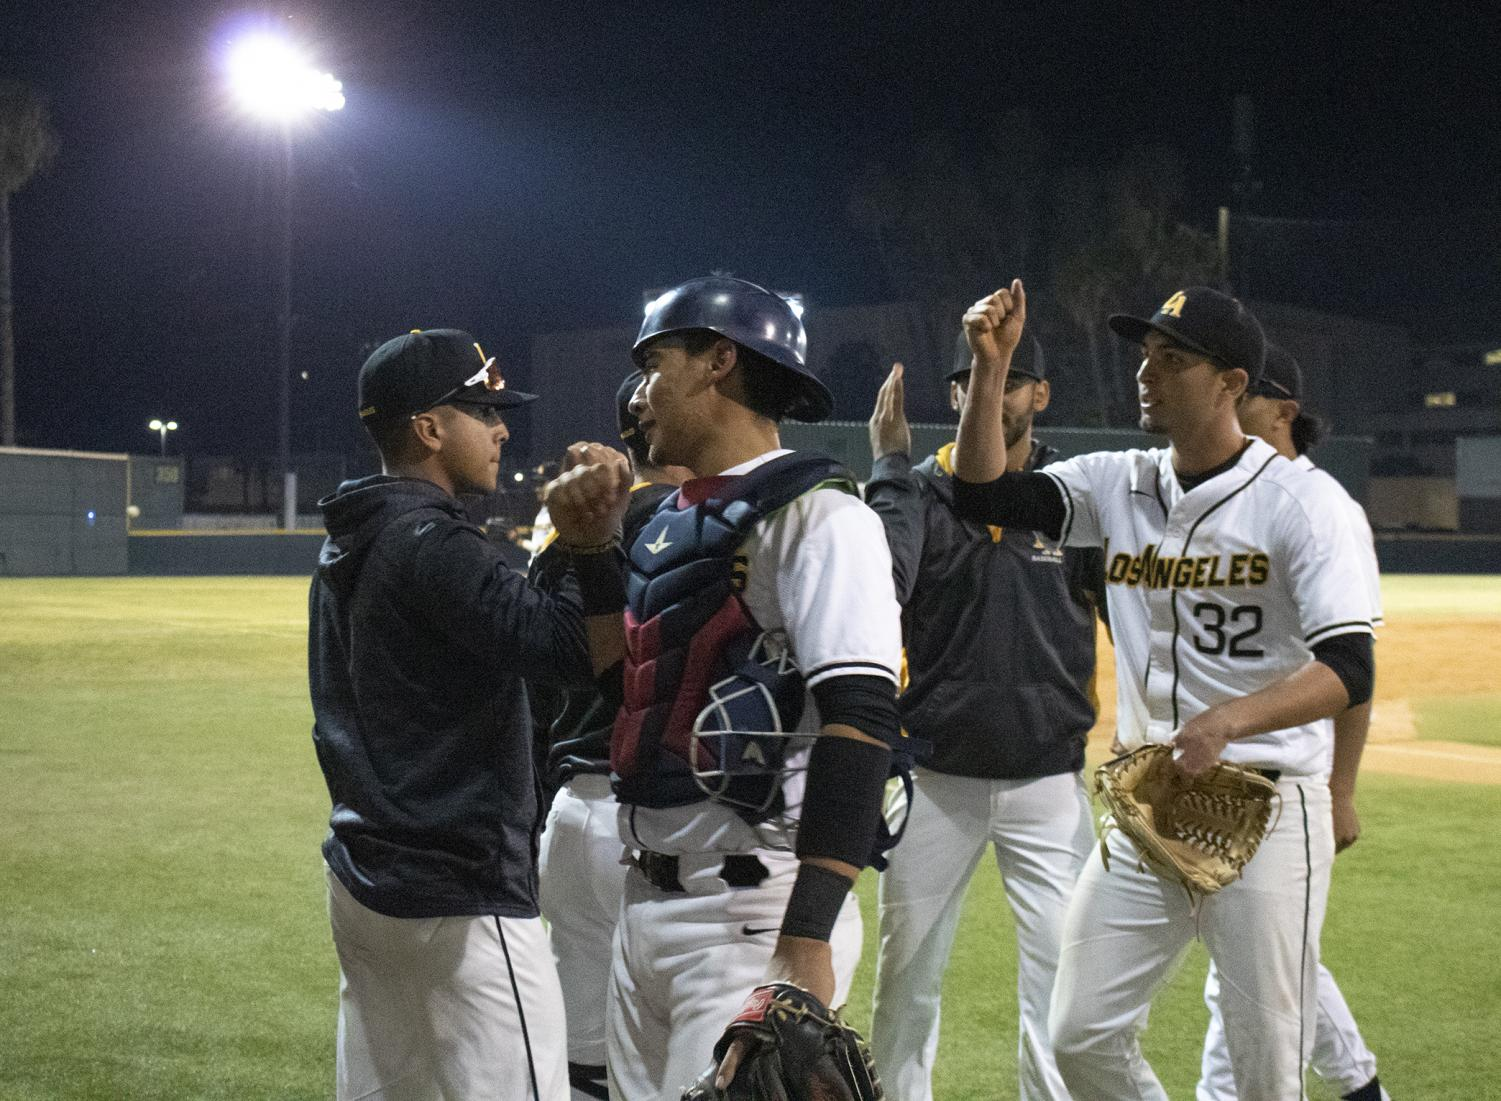 The baseball team celebrates a victory at the second game this past Friday against Northwest Nazarene.